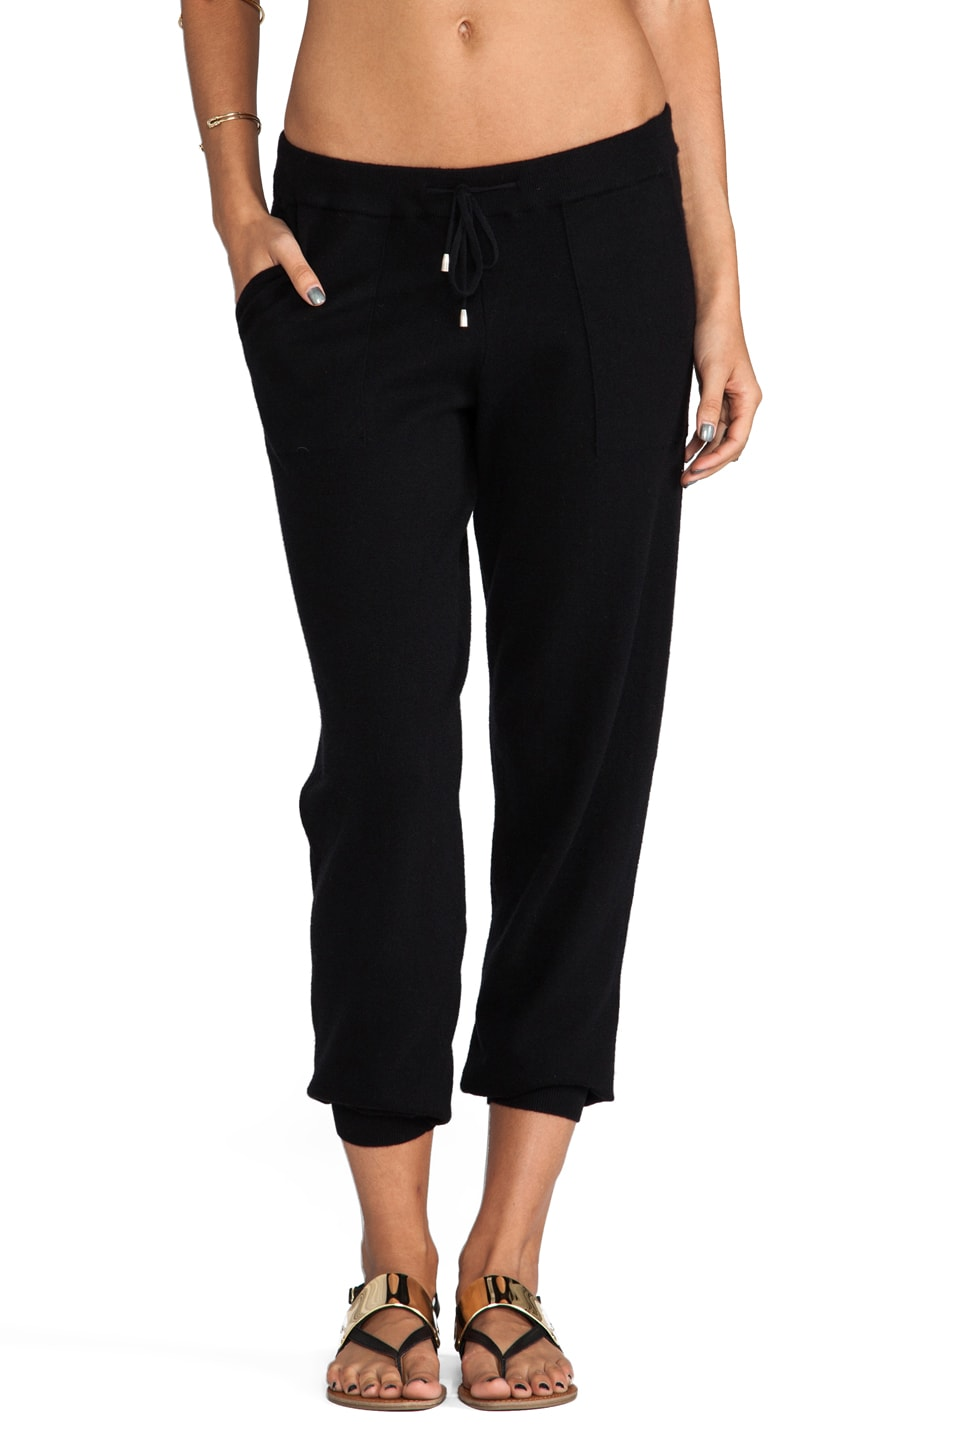 Joie Solid Valora Pant in Caviar